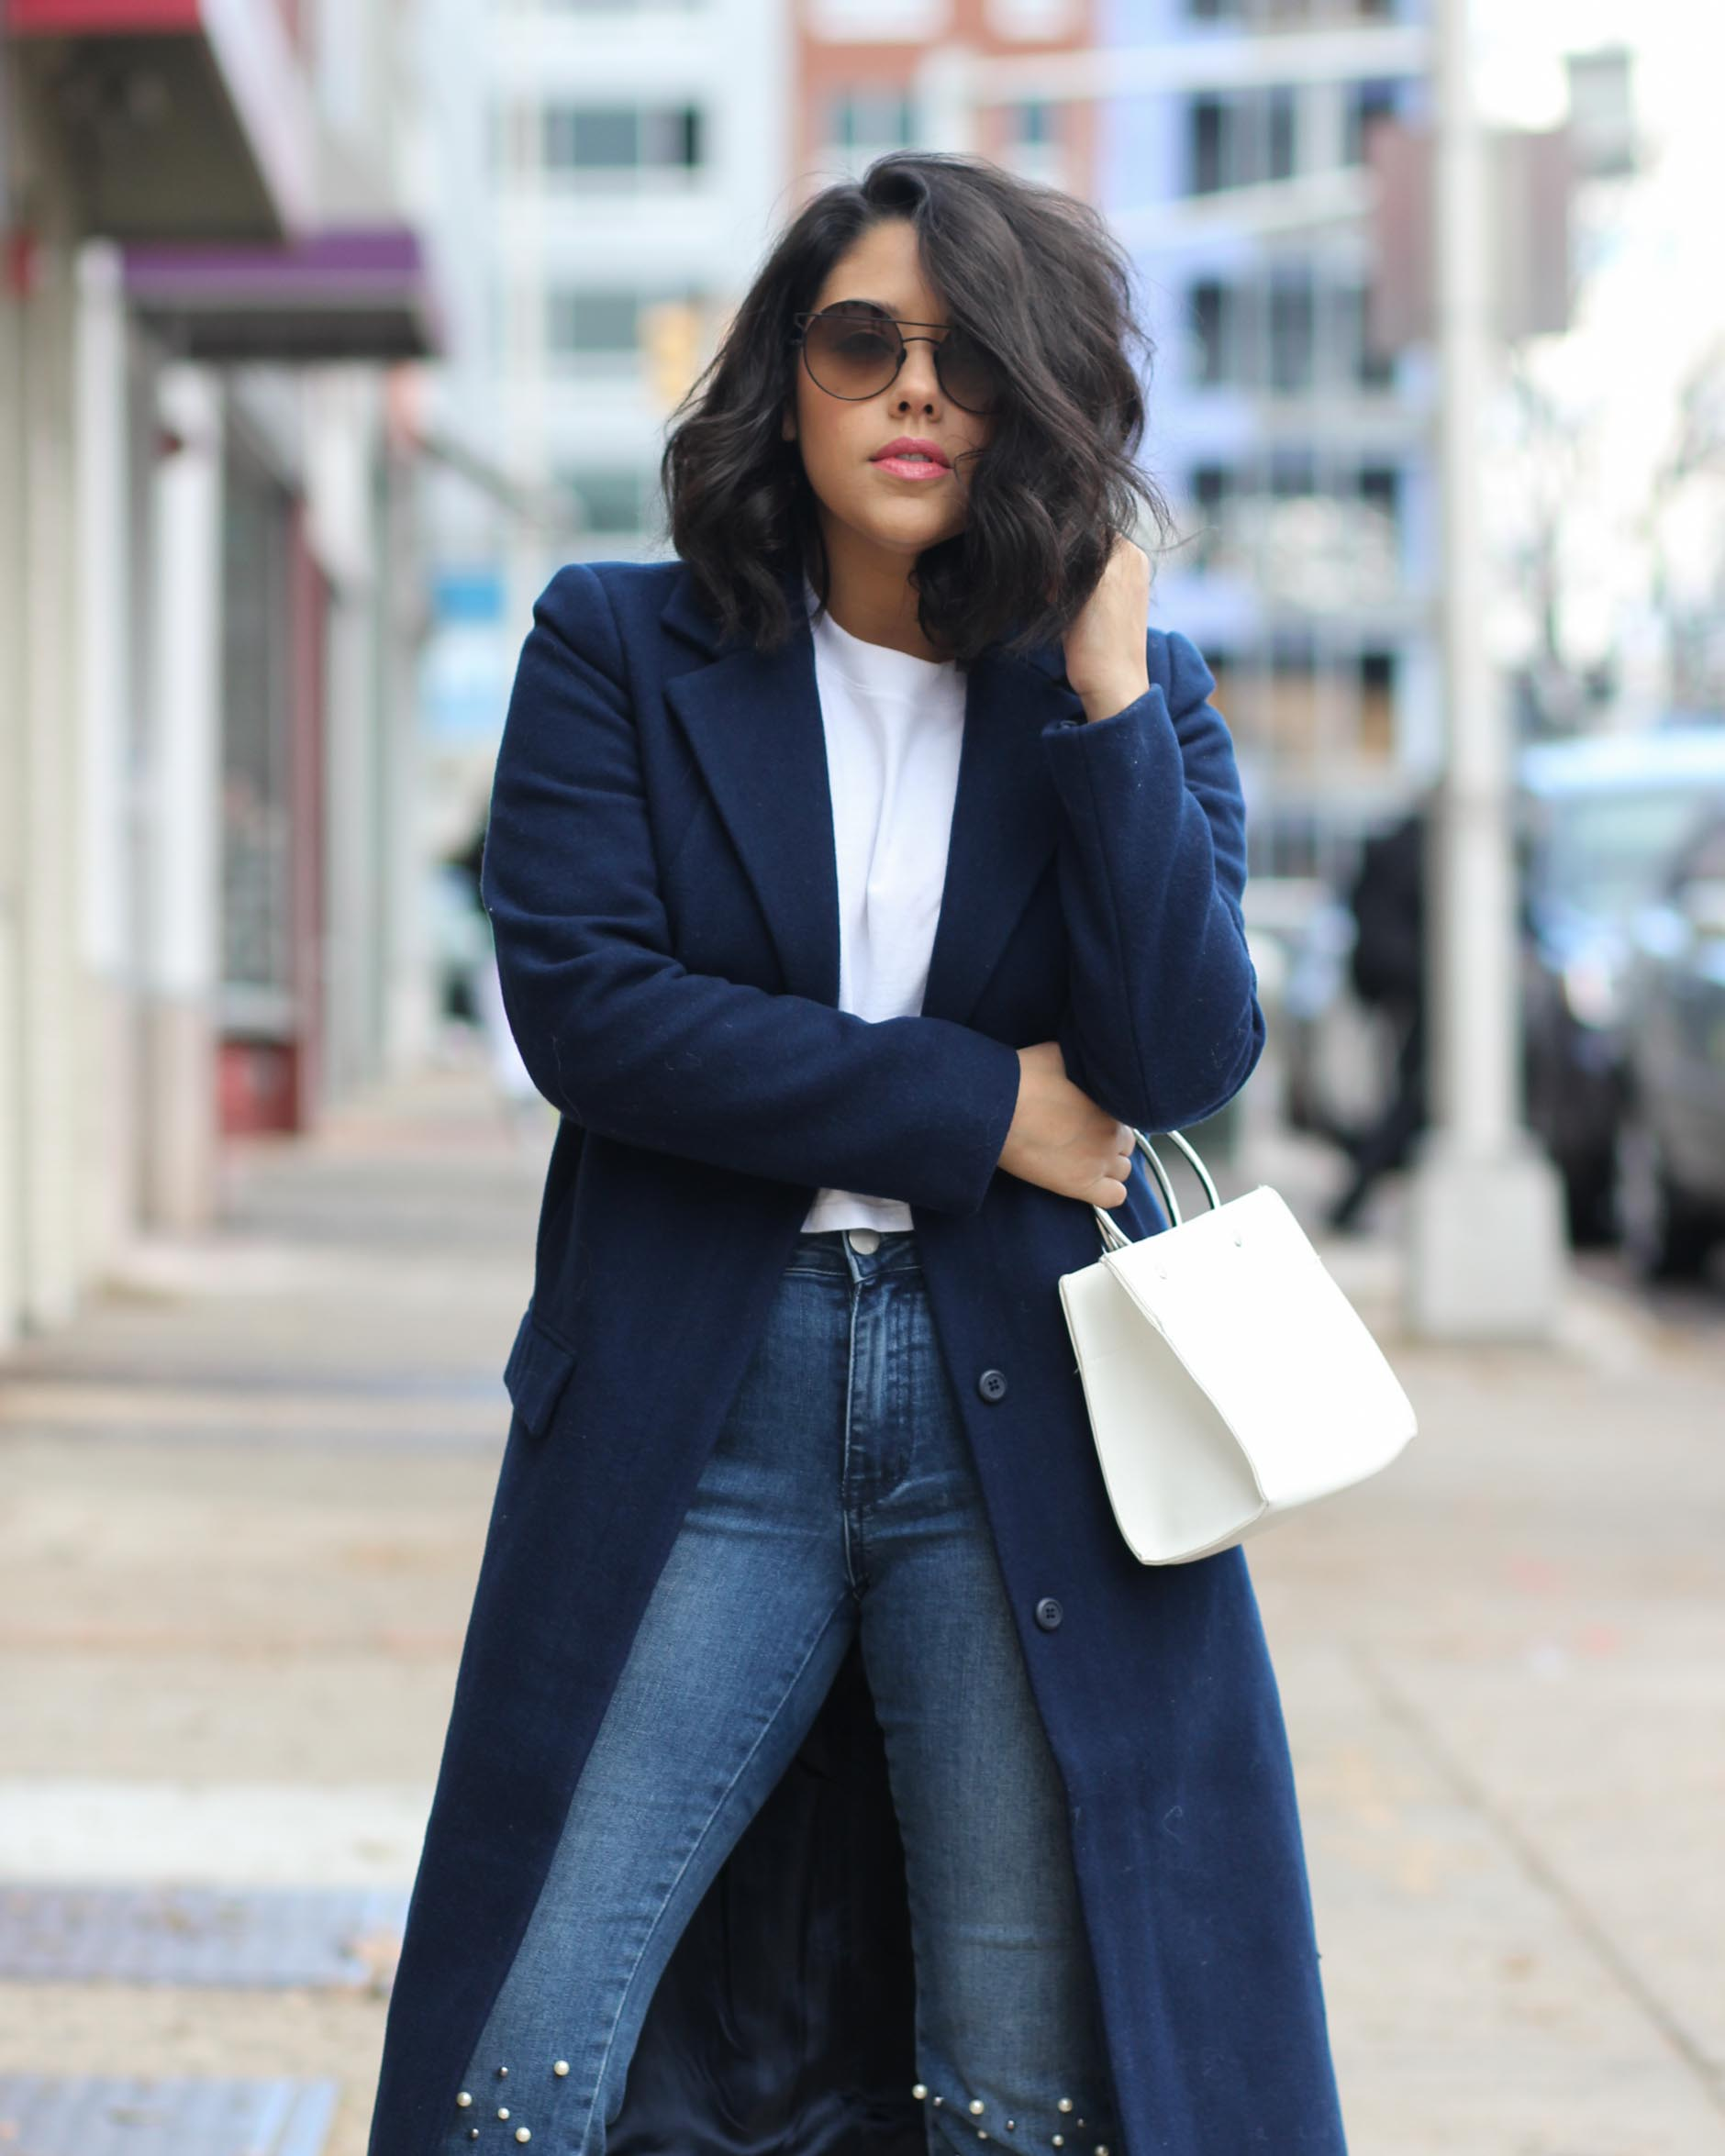 lifestyle blogger naty michele wearing pearl jeans and a navy coat